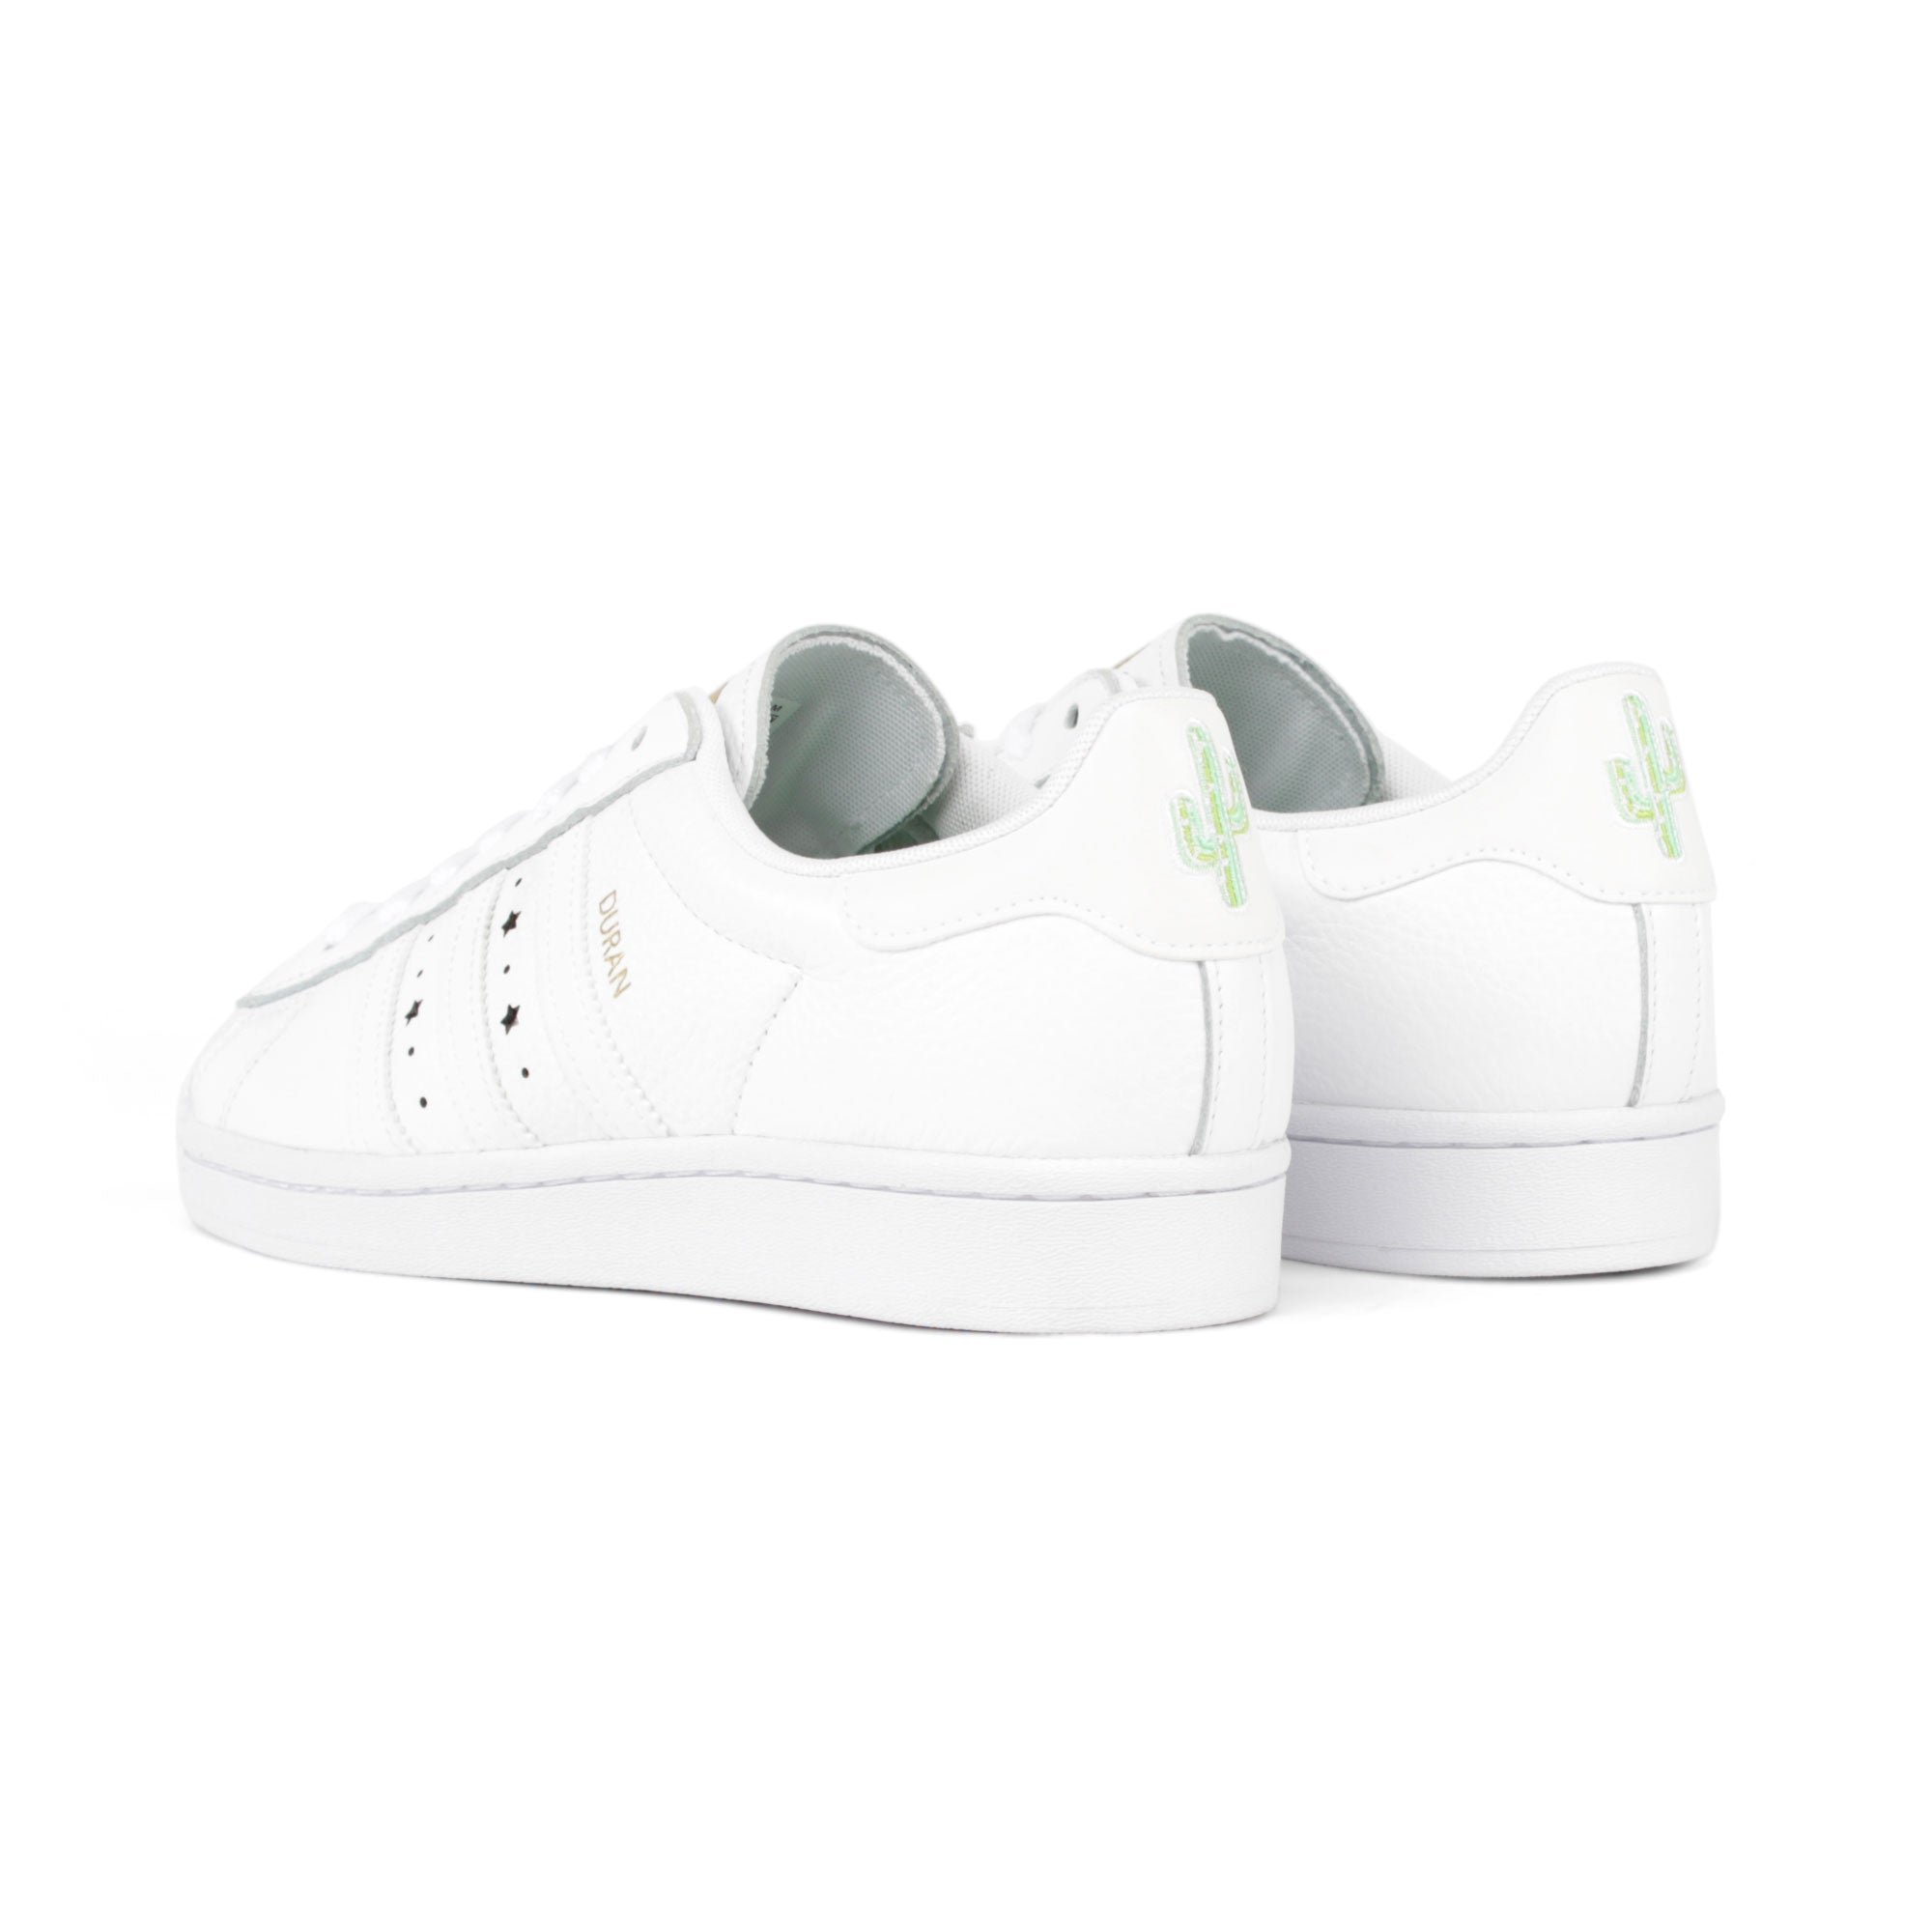 Adidas Superstar ADV x Duran Product Photo #3